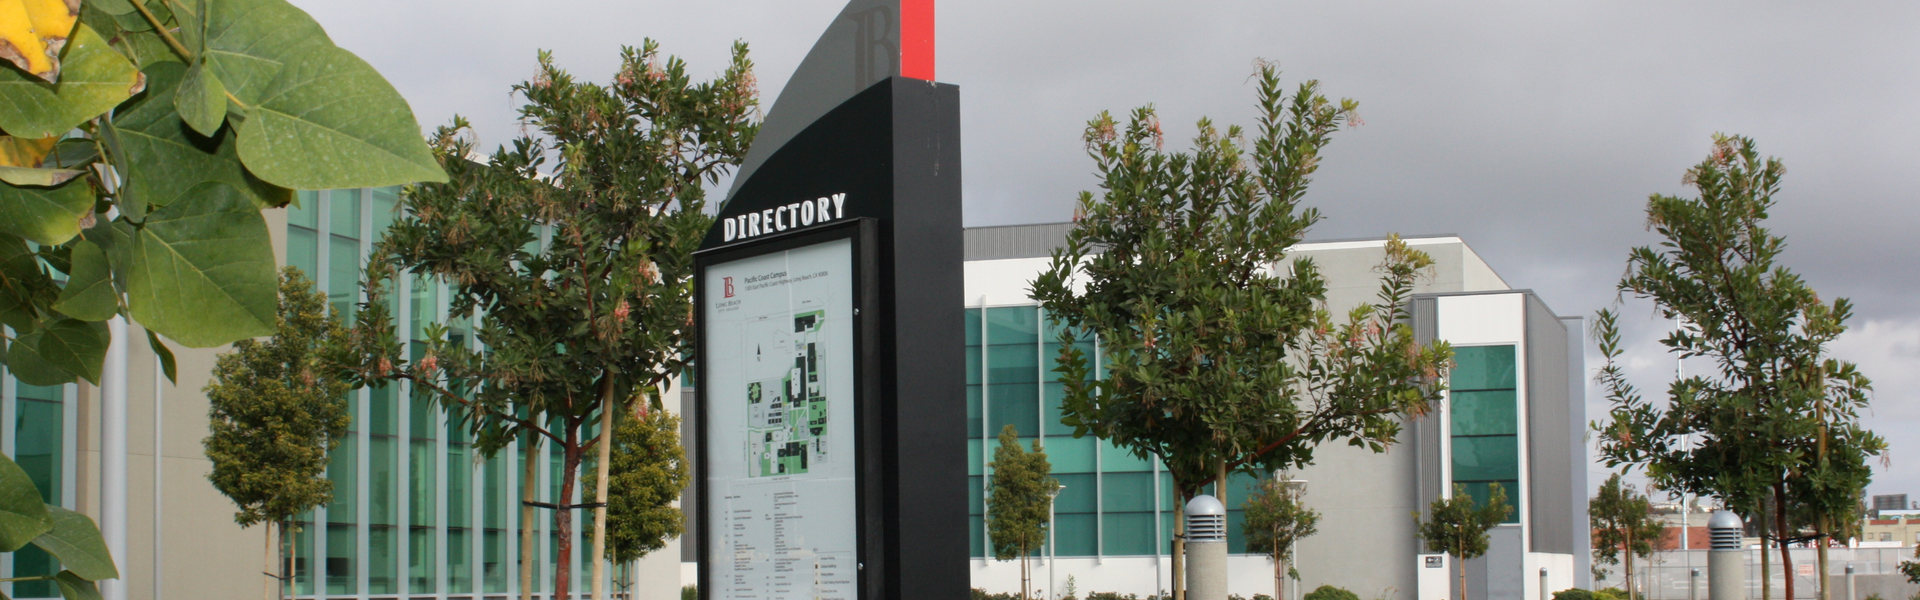 A directory kiosk on the PCC campus.